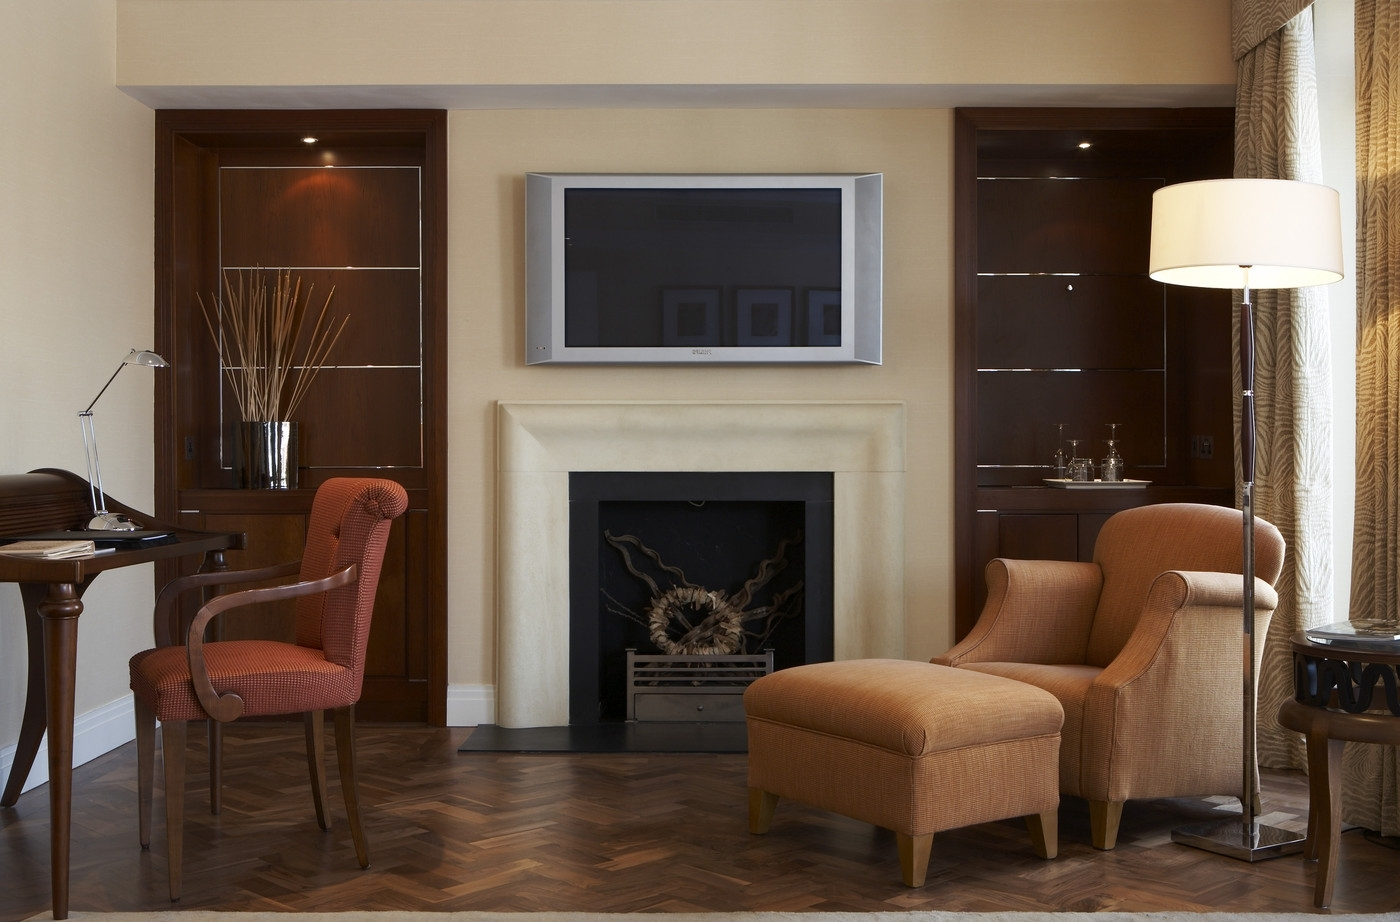 Chimney Breast Photos, Design, Ideas, Remodel, And Decor Lonny Small Living Room With Chimney Breast